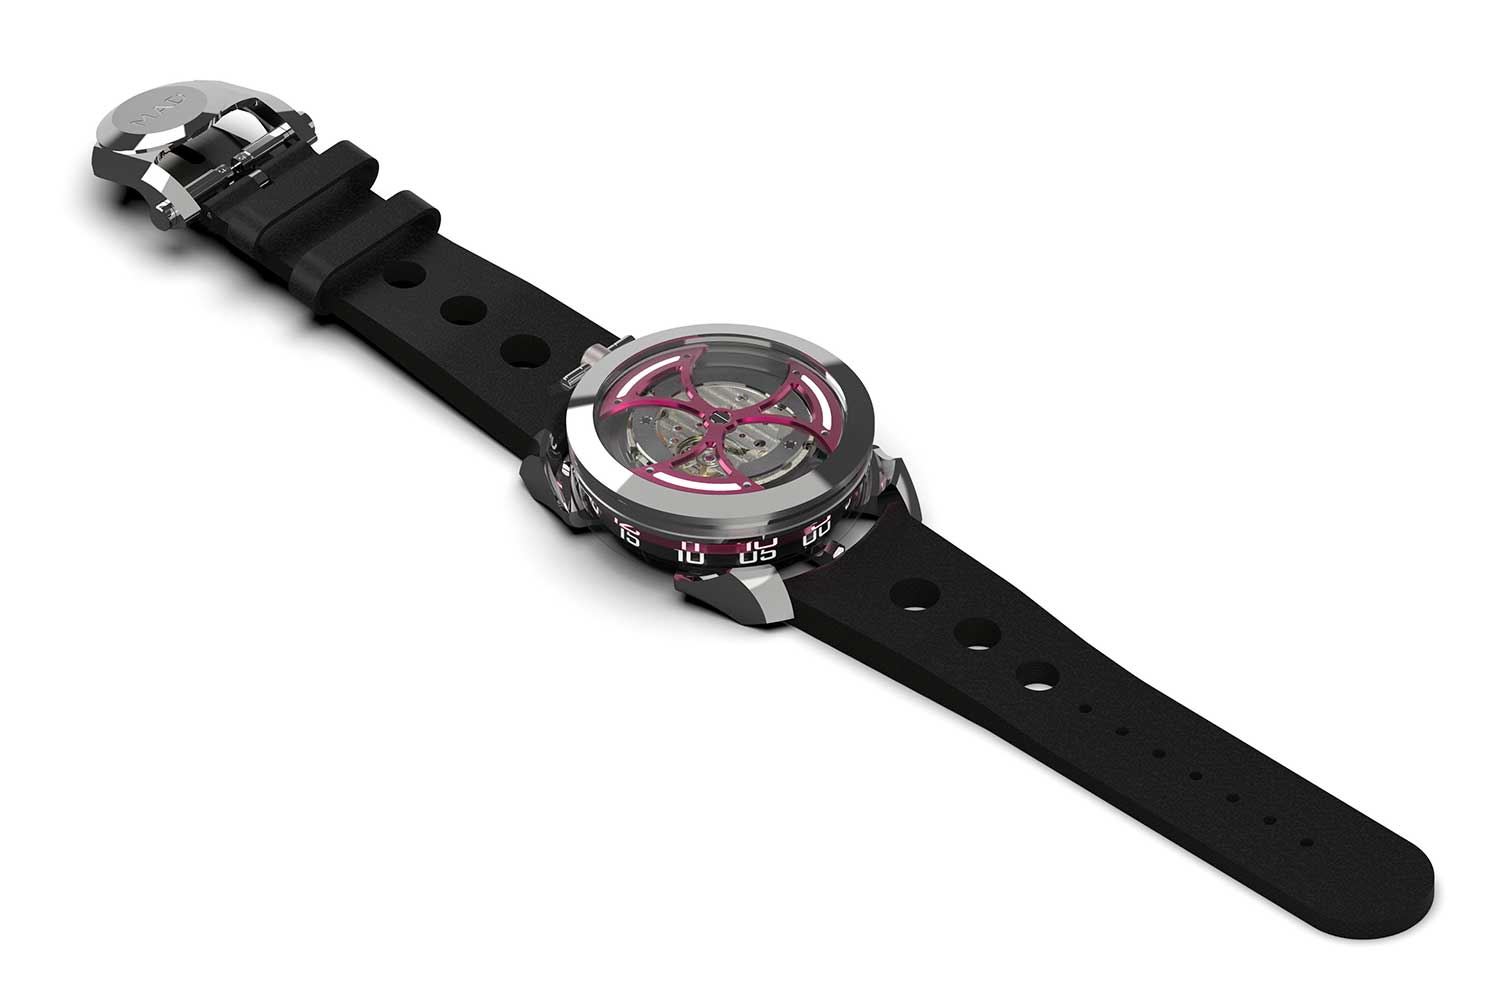 Pièce unique M.A.D.1 by Maximilian Büsser with pink rotor and hour ring